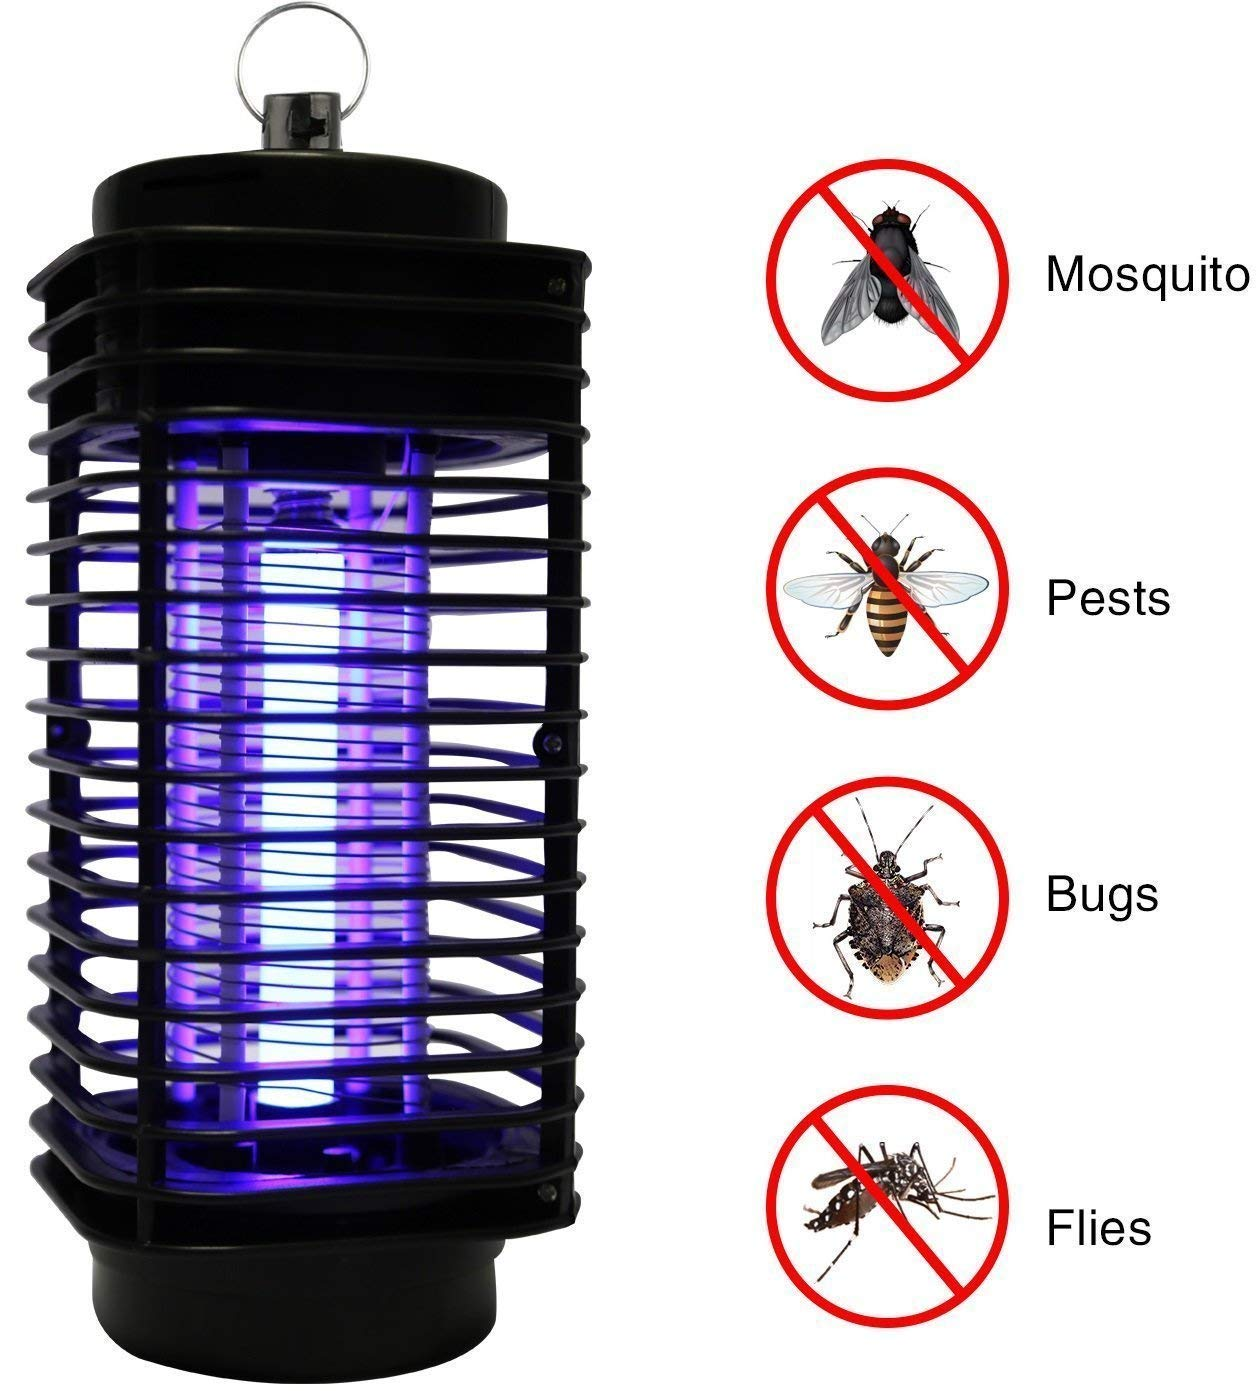 CYLONG Mosquito Killer Lamp, Bug Zapper and Fly Zapper Catcher Killer Trap - Protects Up to 1.5 Acre/Bug and Fly Killer, Insect Killer, Mosquito Killer - for Residential and Commercial Use (Black) by CYLONG